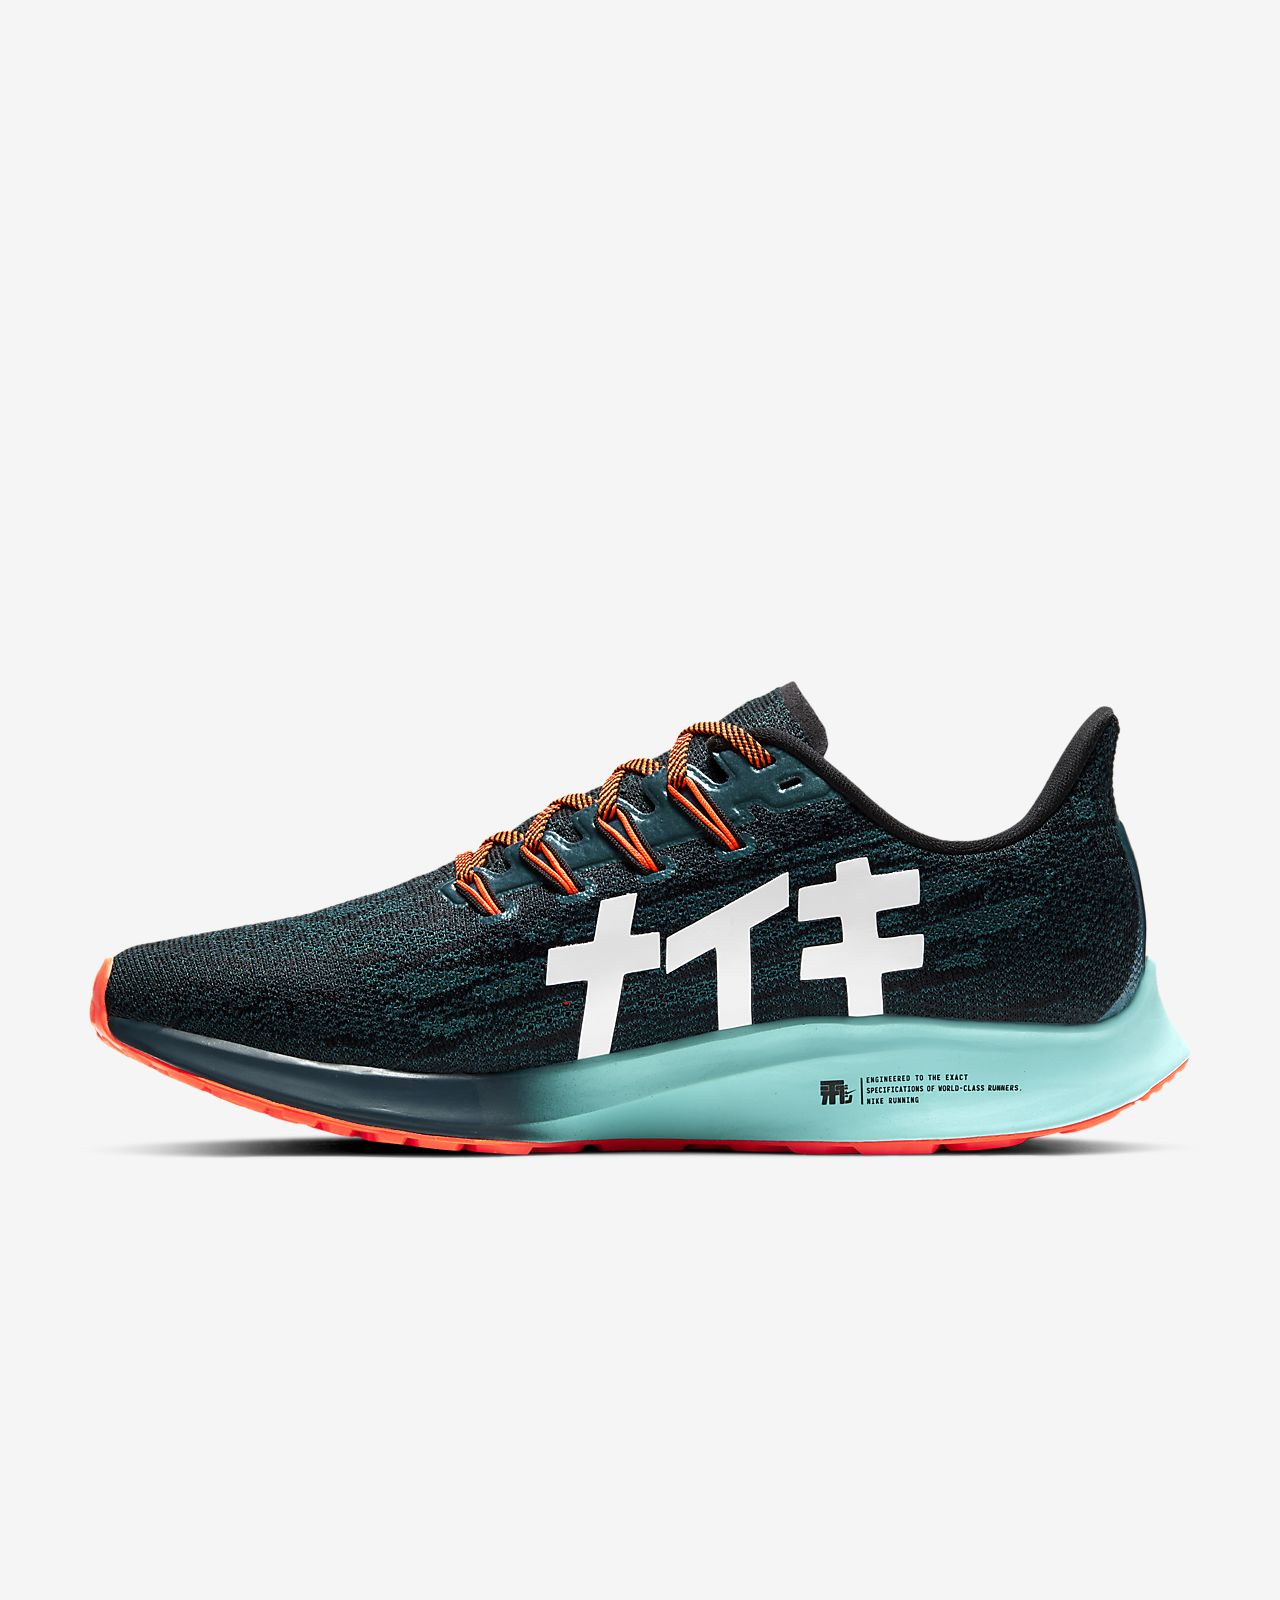 Turquoise Chaussures Femme Nike Air Zoom NikeOrangé gfb67Yy